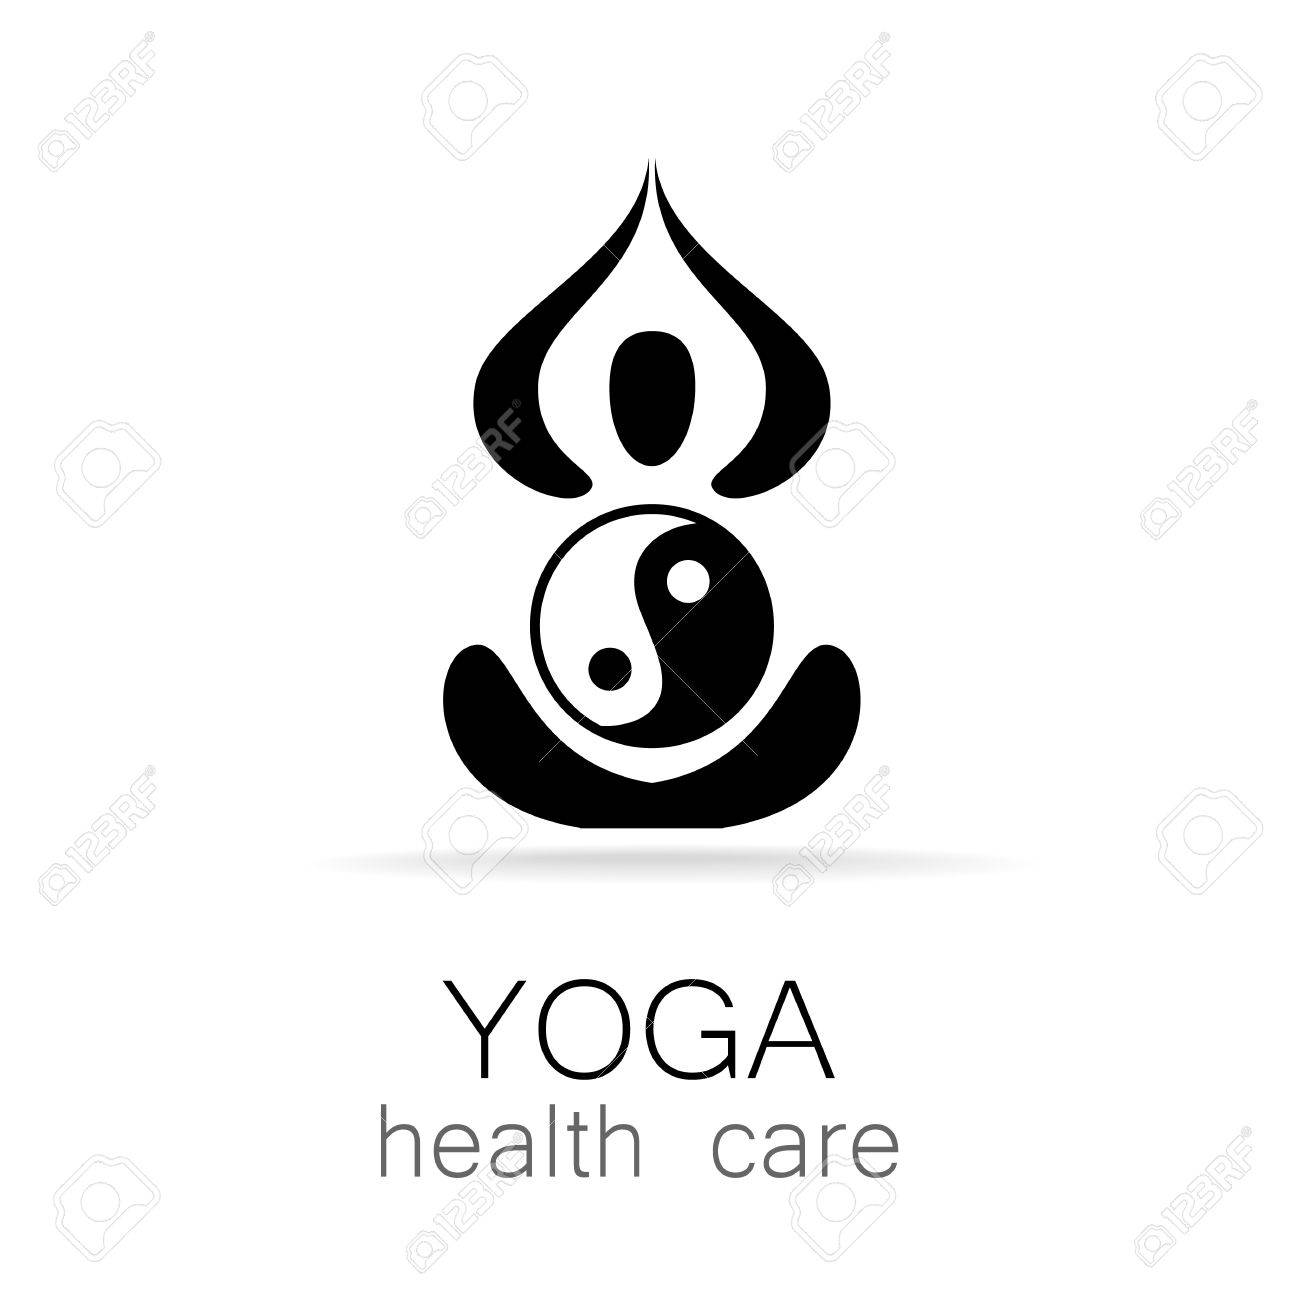 Yoga Logo Design Vector Template Yoga Concept Icon Meditation Royalty Free Cliparts Vectors And Stock Illustration Image 44354460